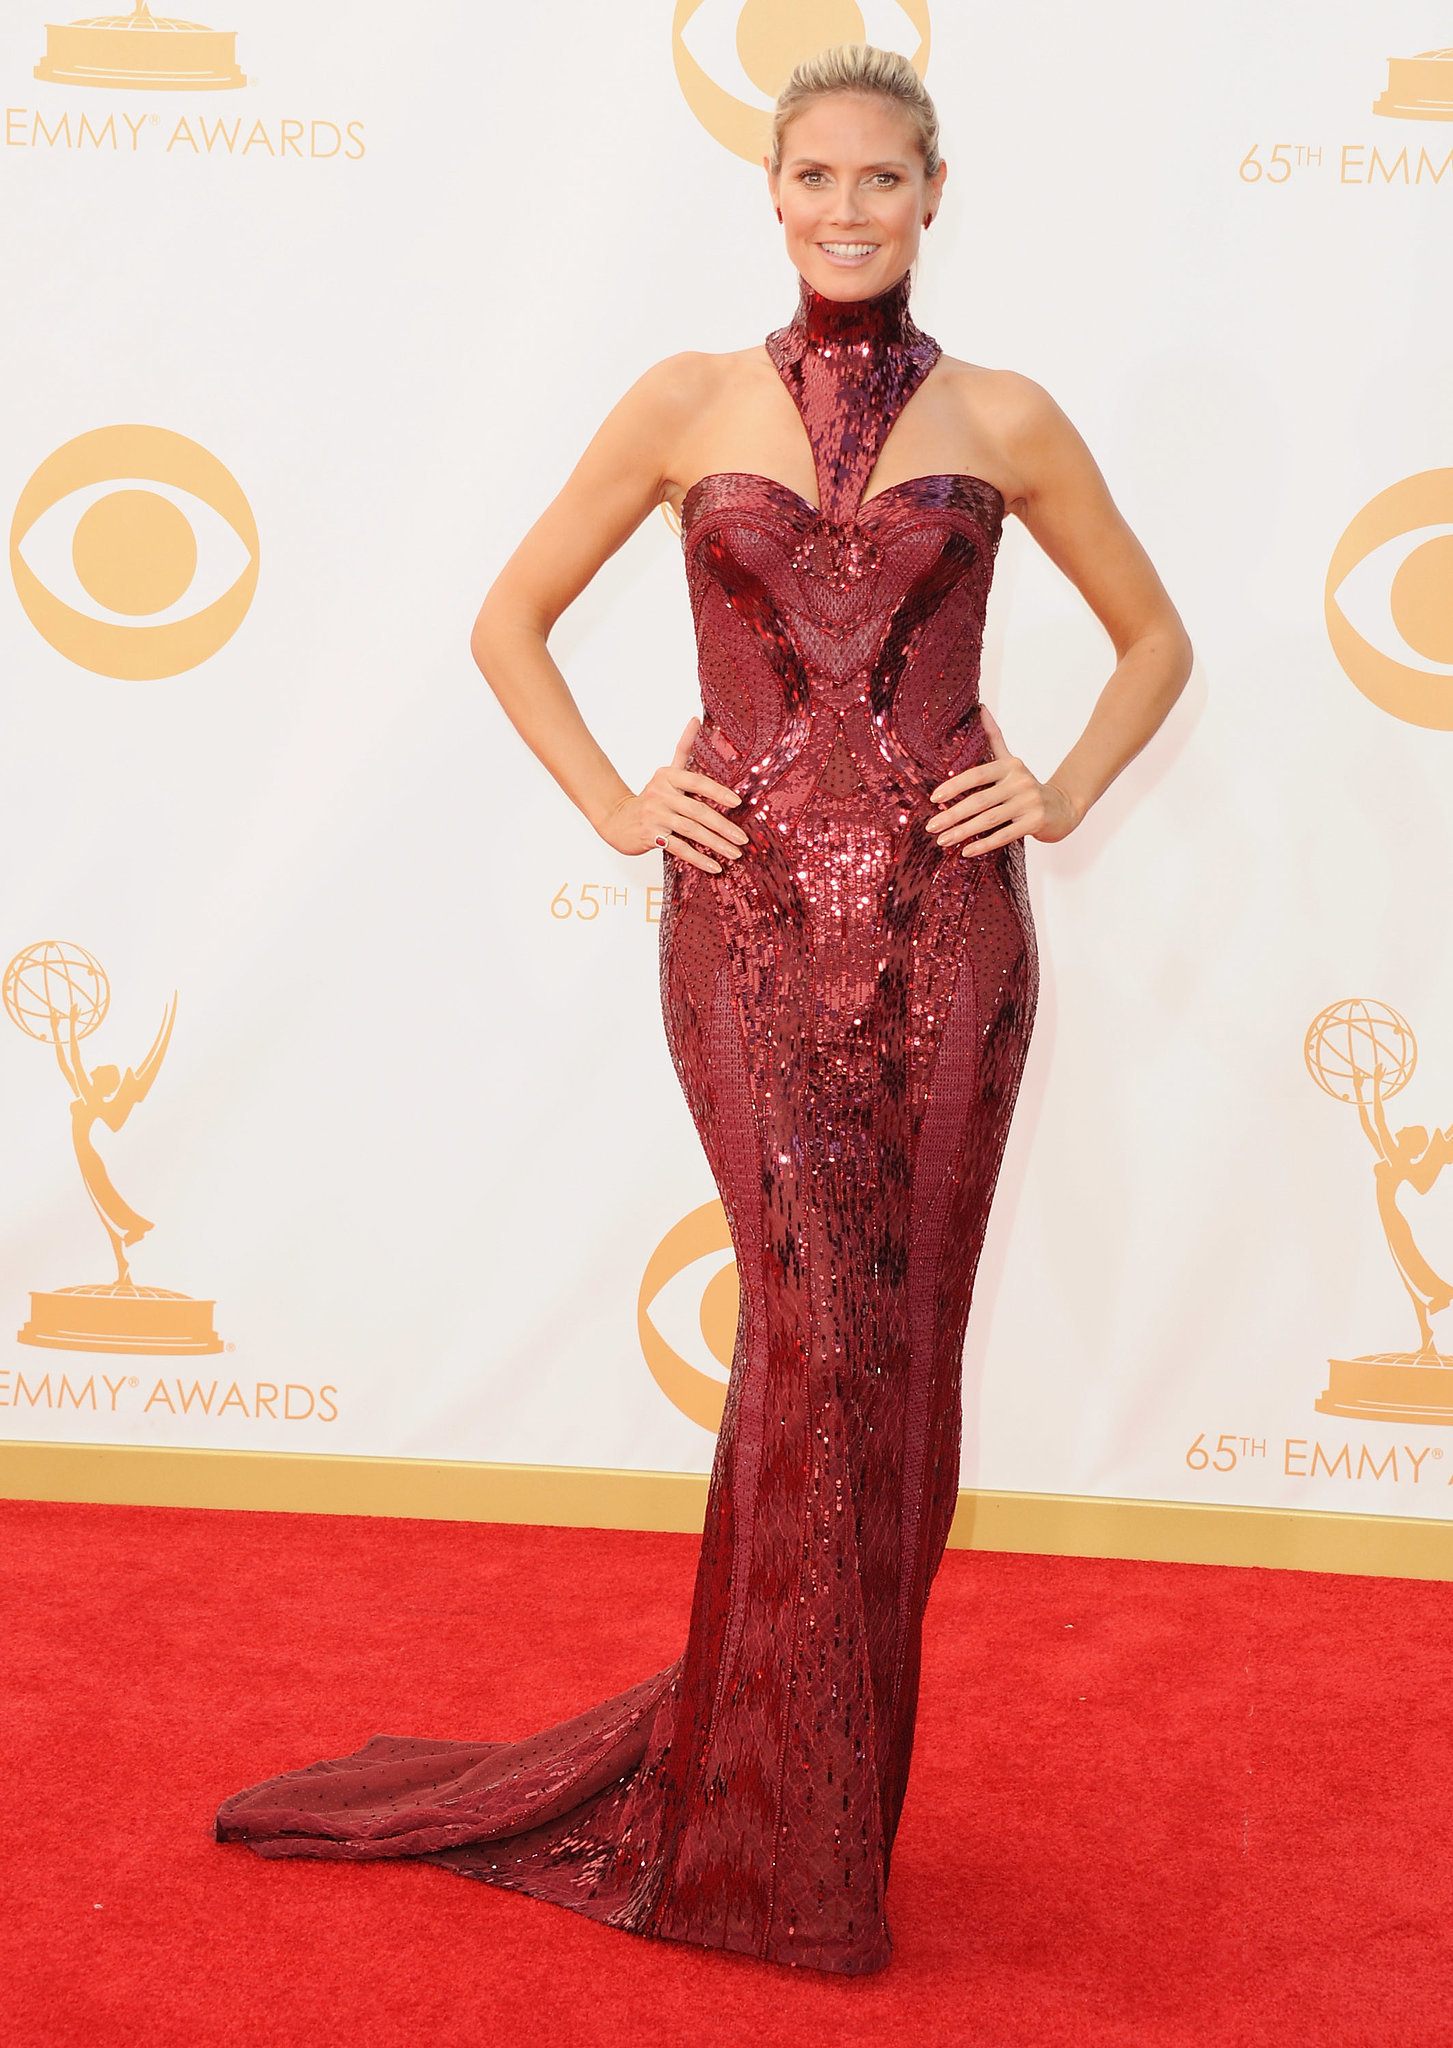 Heidi Klum in Versace at the Emmys